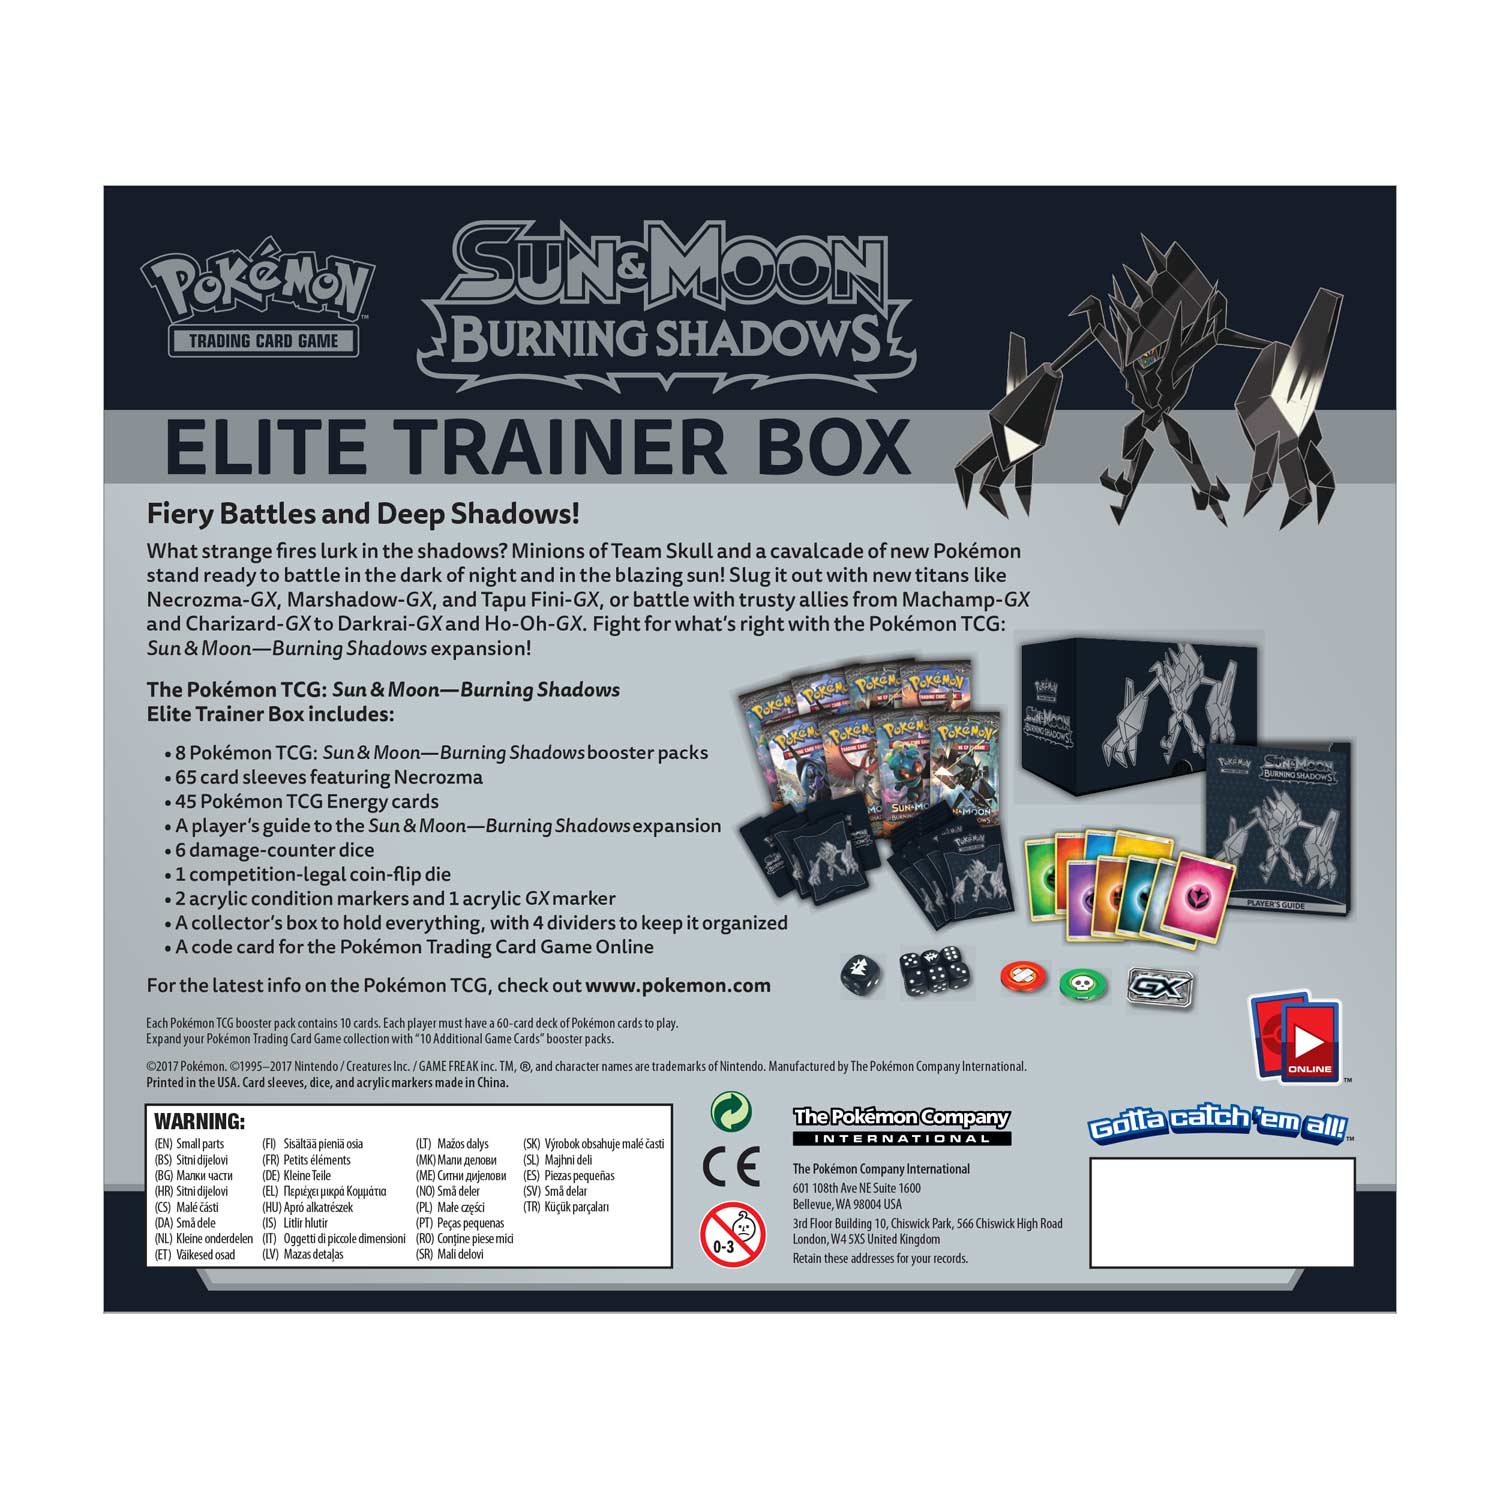 Pokemon: S/M Burning Shadows Elite Trainer Box $30